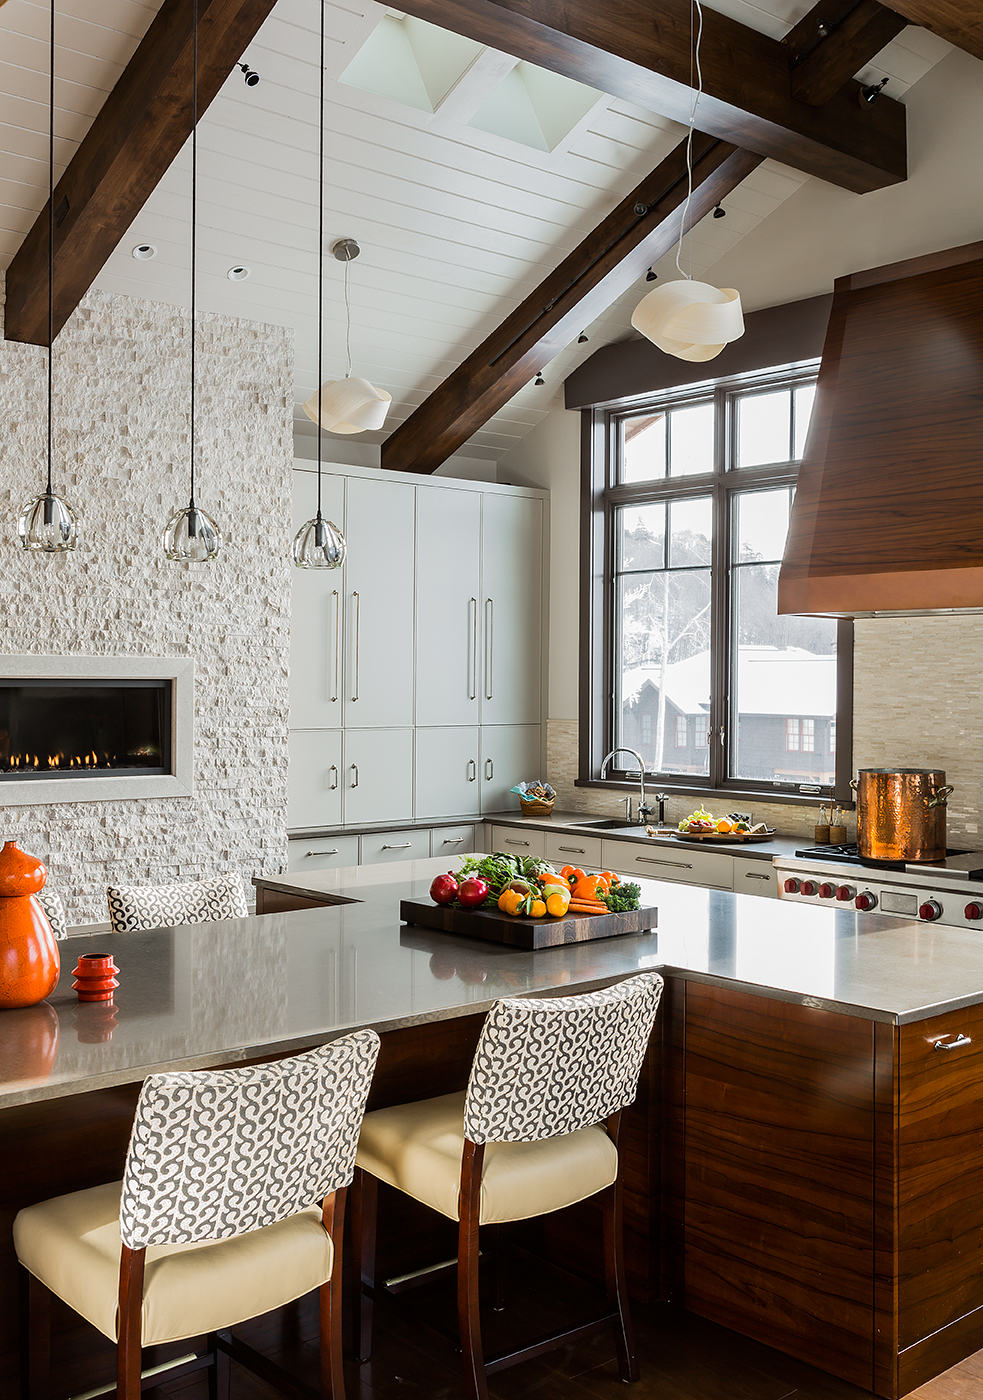 Taylor-Stowe_Kitchen with Hood.jpg